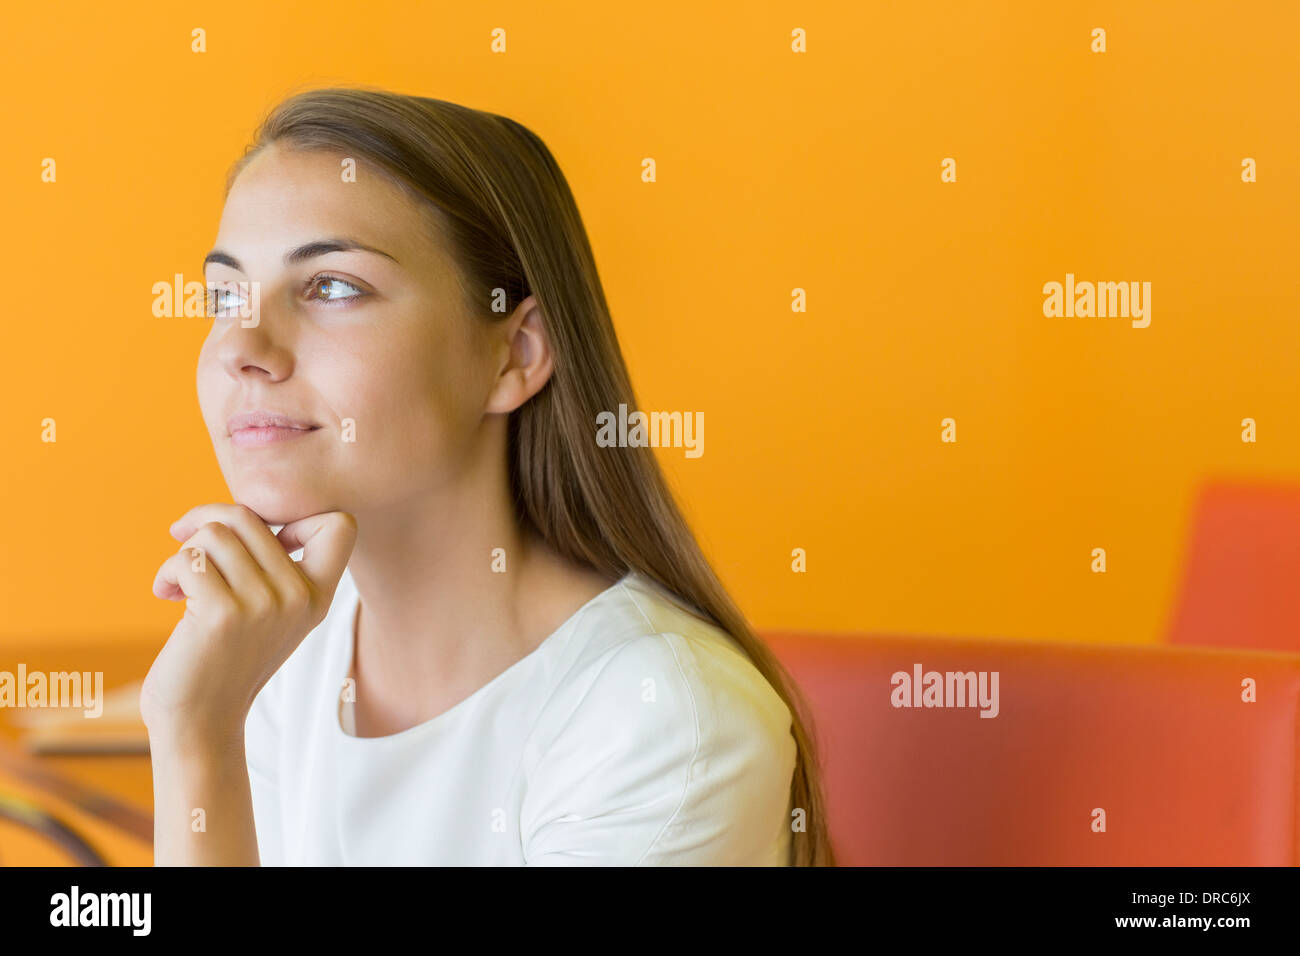 Pensive businesswoman with hand on chin - Stock Image